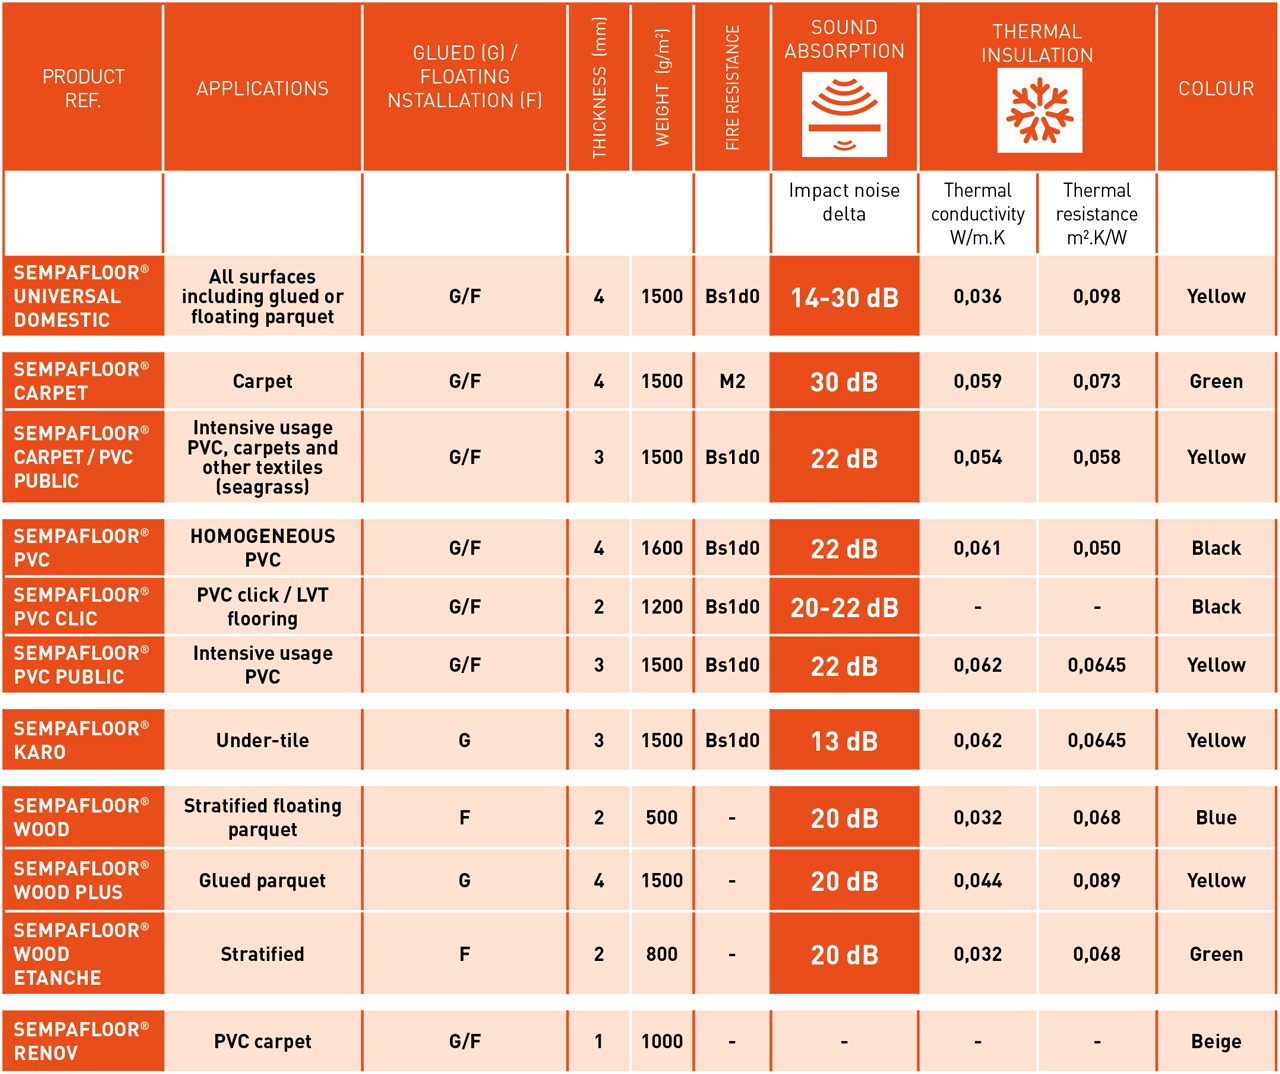 This table shows the main technical characteristics in terms of soundproofing and thermal insulation for products in the SempaFloor range.